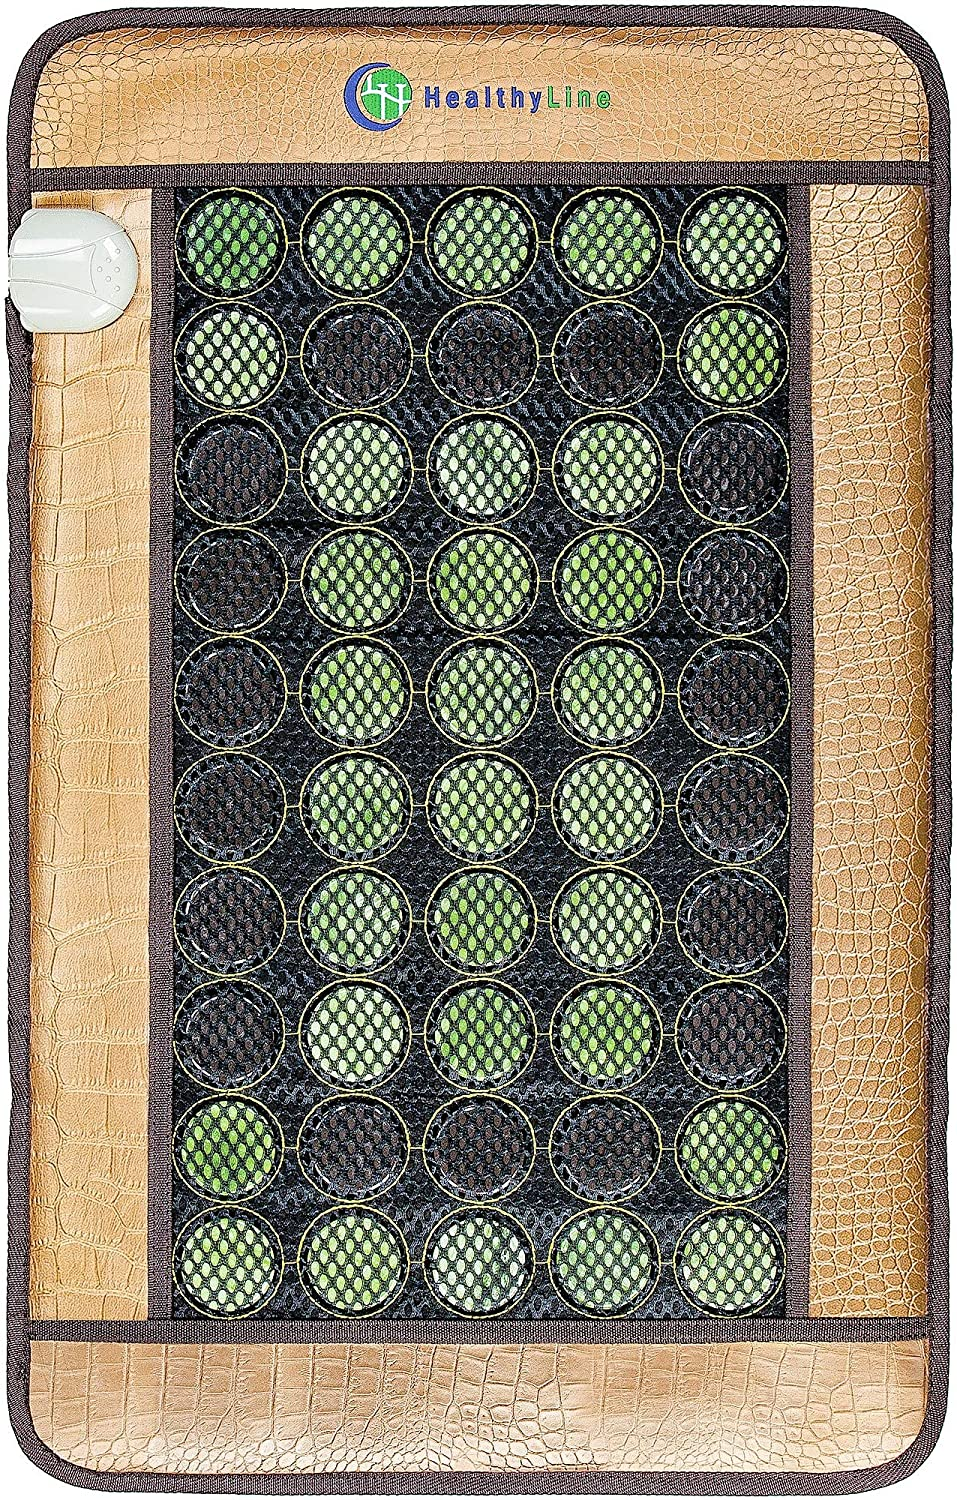 HealthyLine Far Infrared Heating Pad - Natural Jade Tourmaline - Mesh JT Pad Medium 3220 Soft InfraMat Pro®